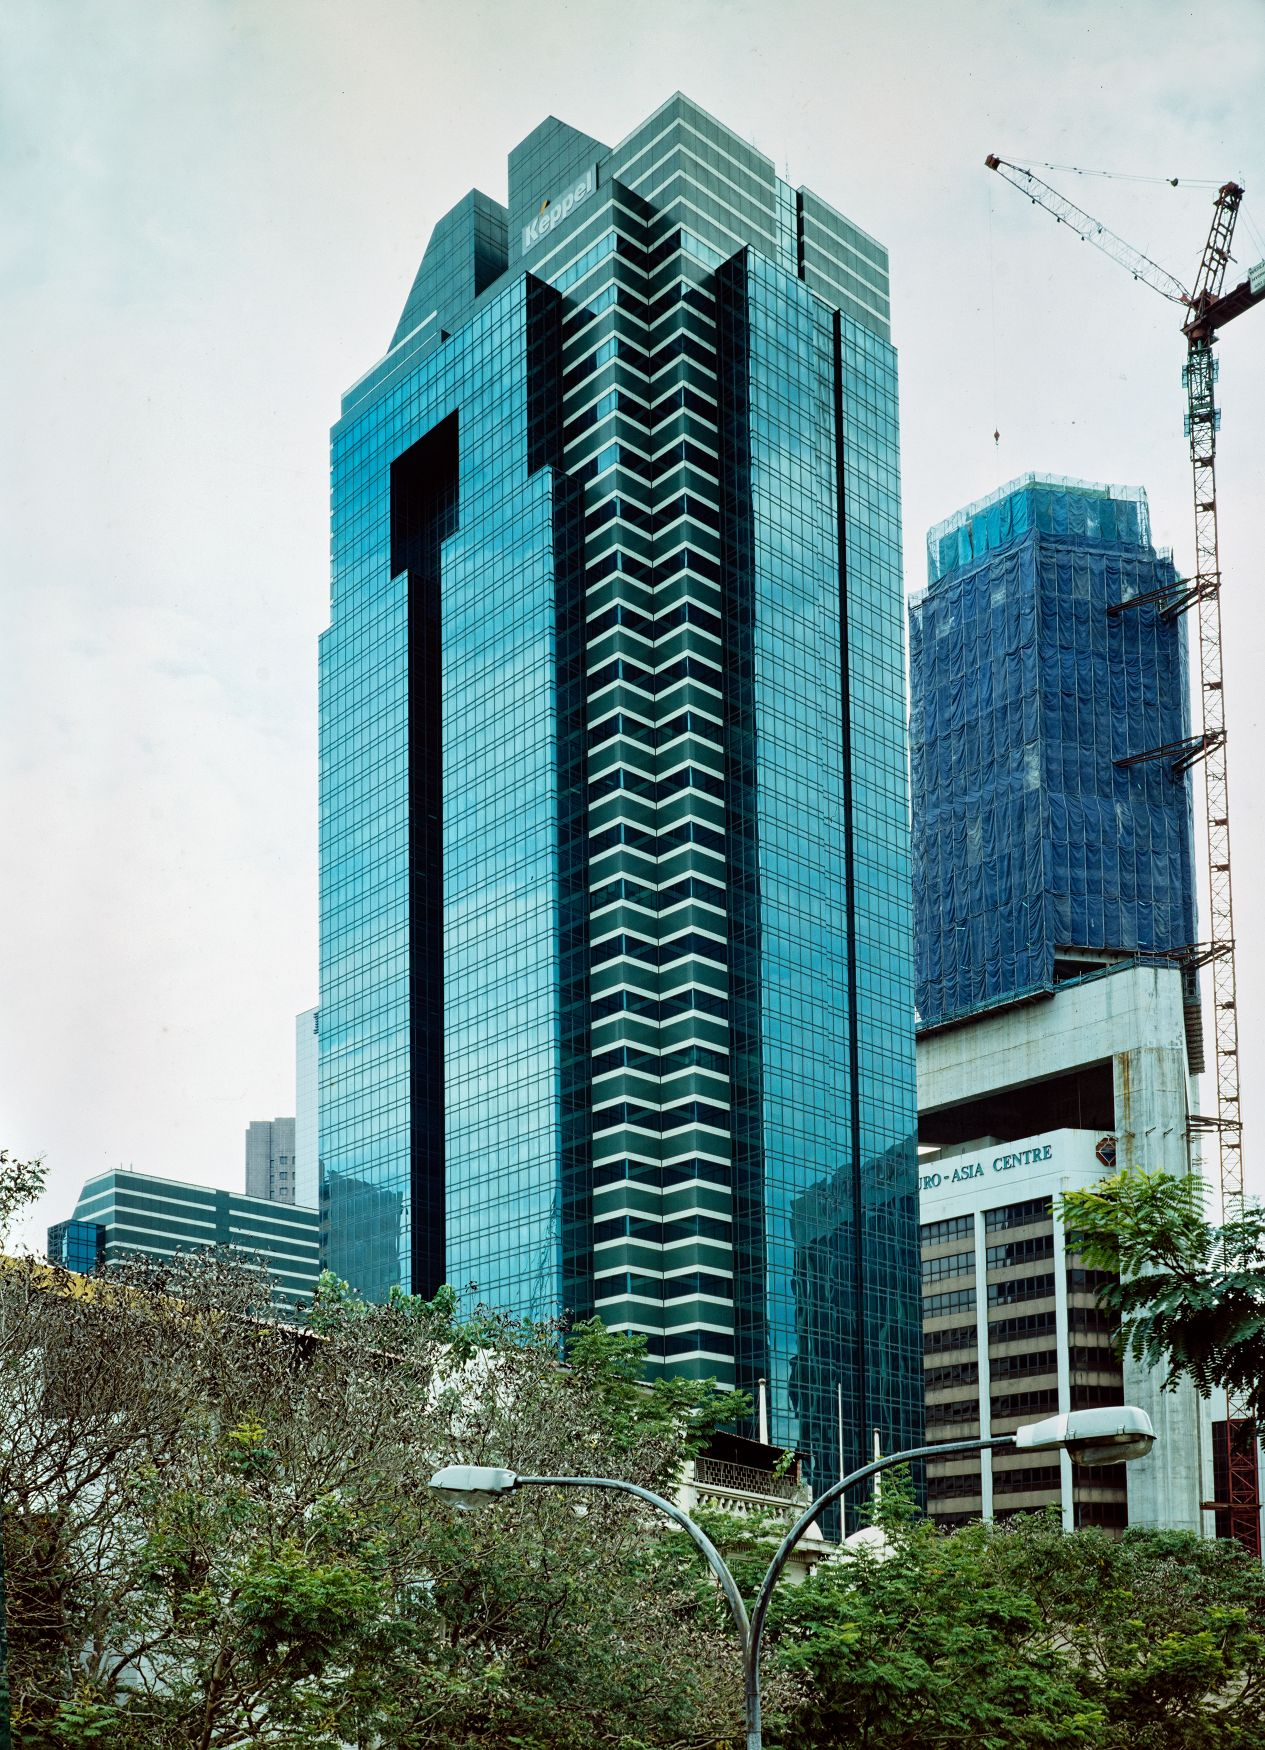 Keppel Towers